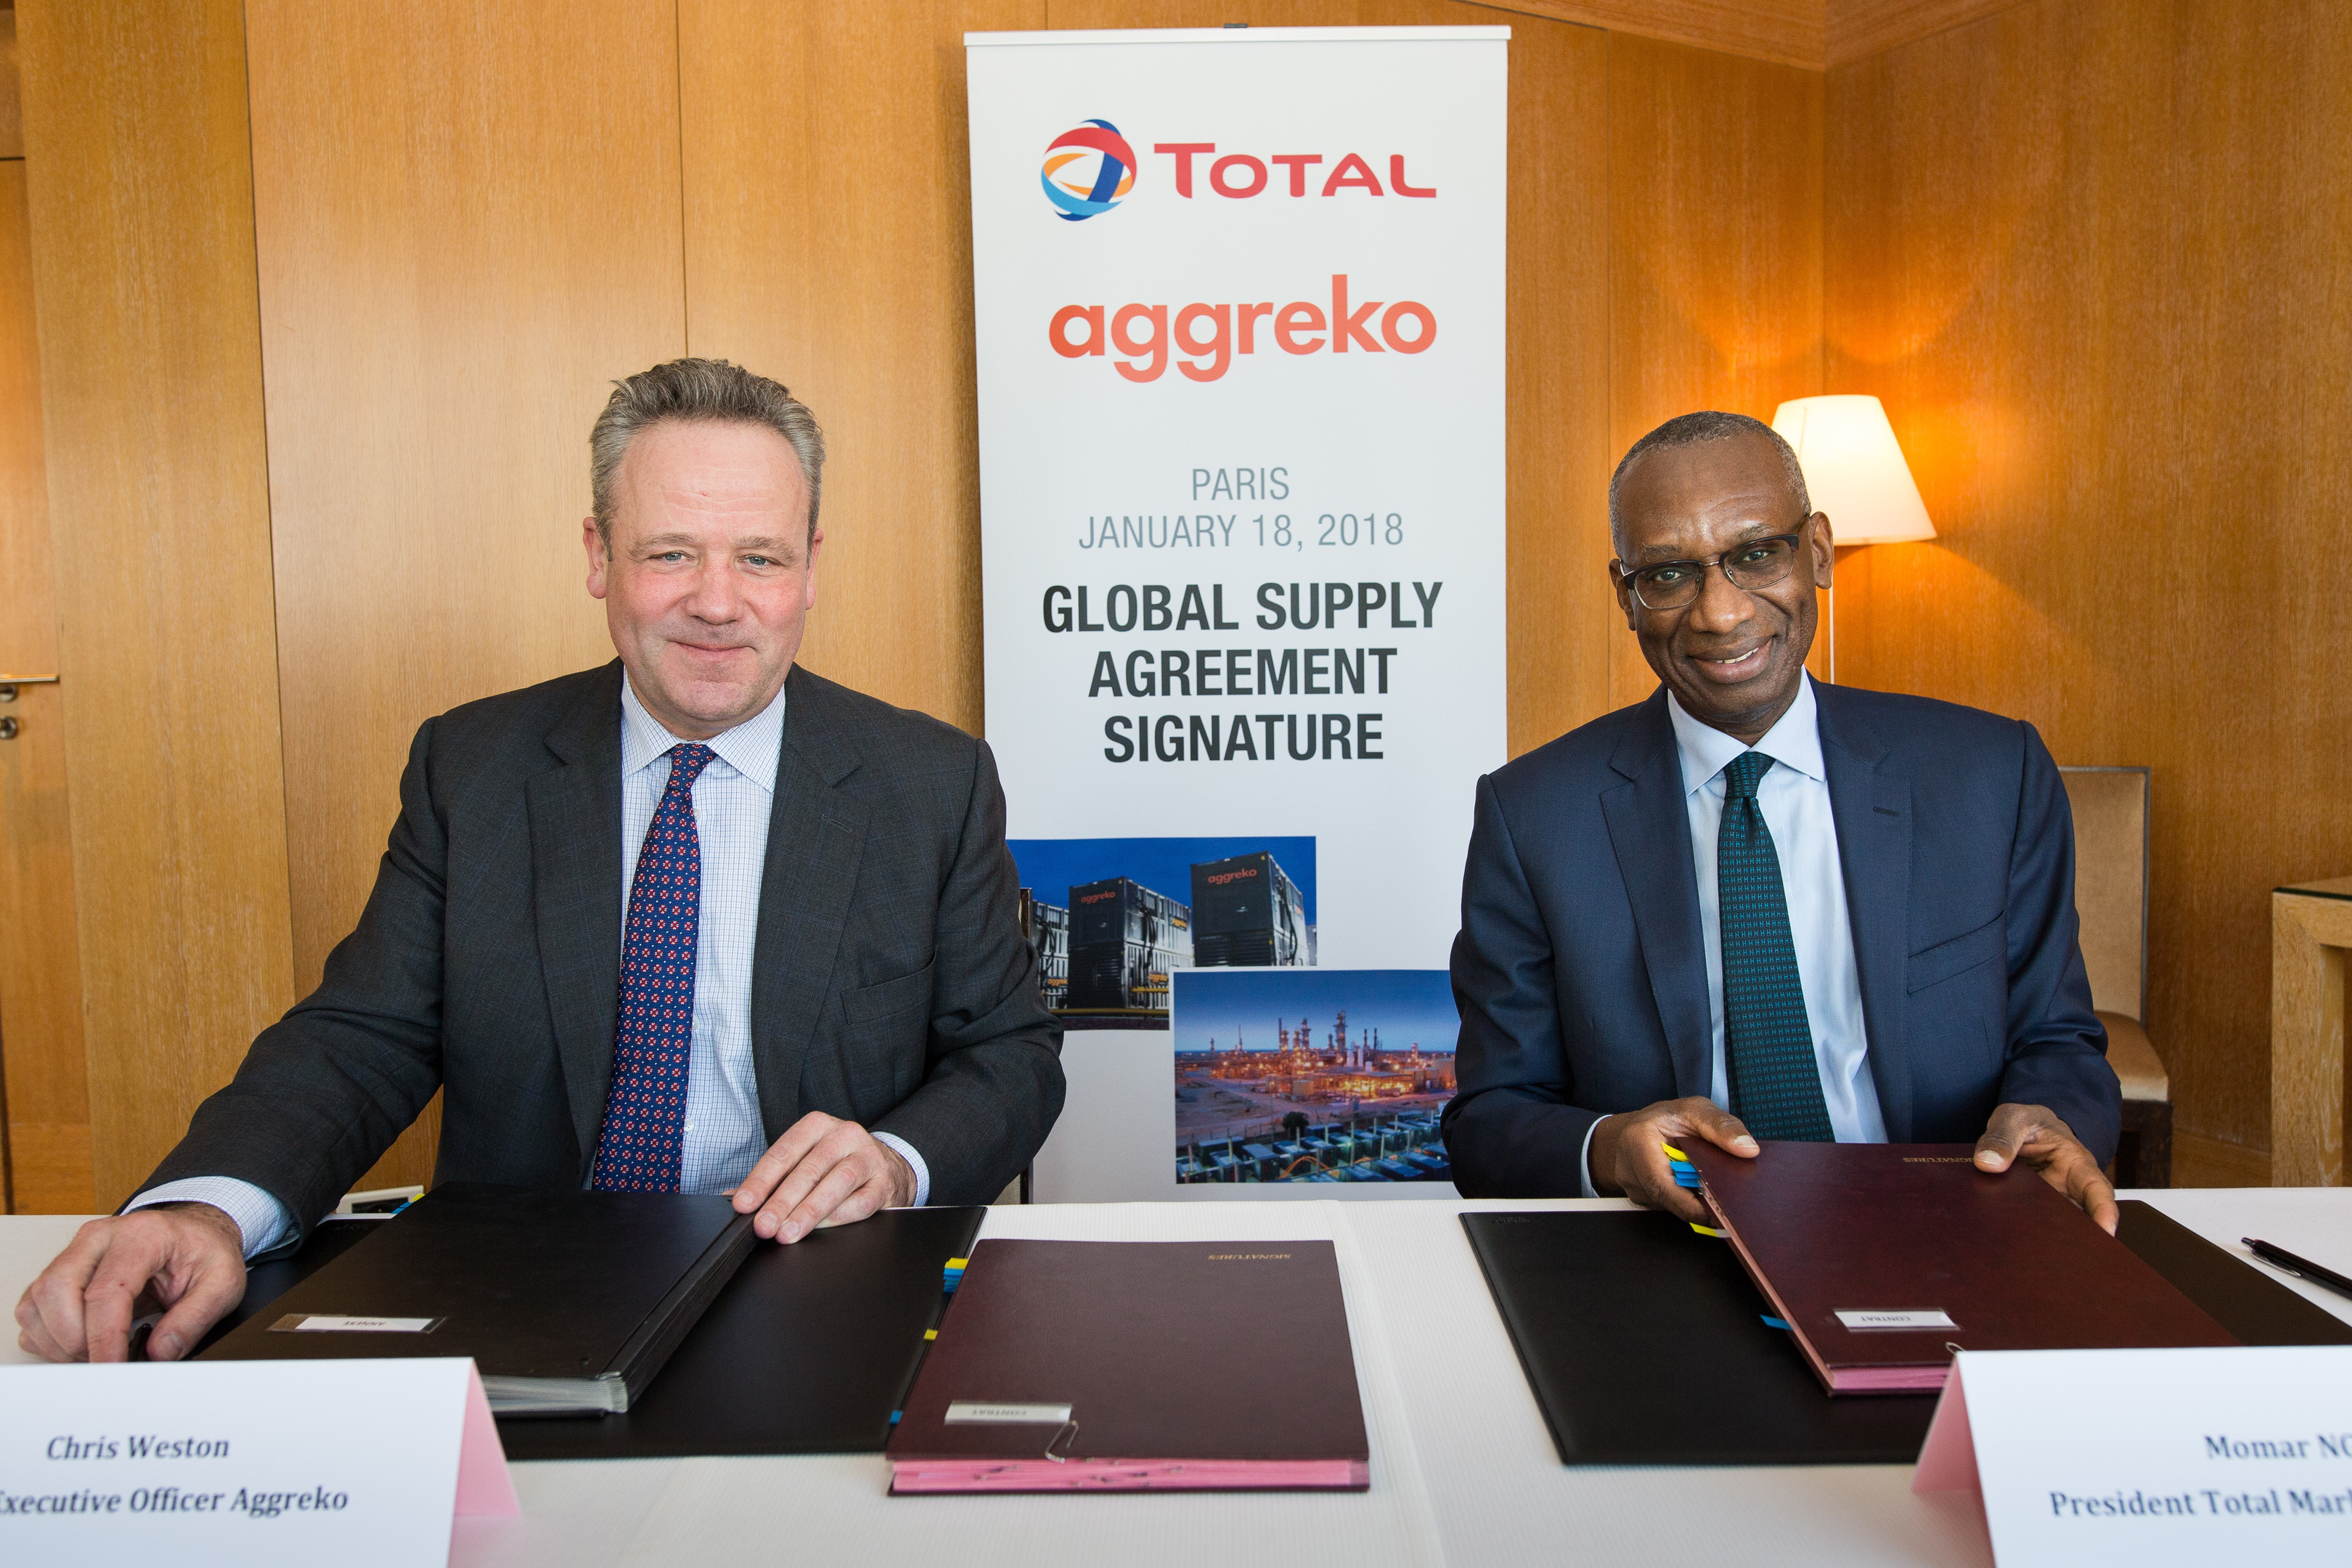 Total Aggreko global supply agreement signature Chris Weston Momar Nguer